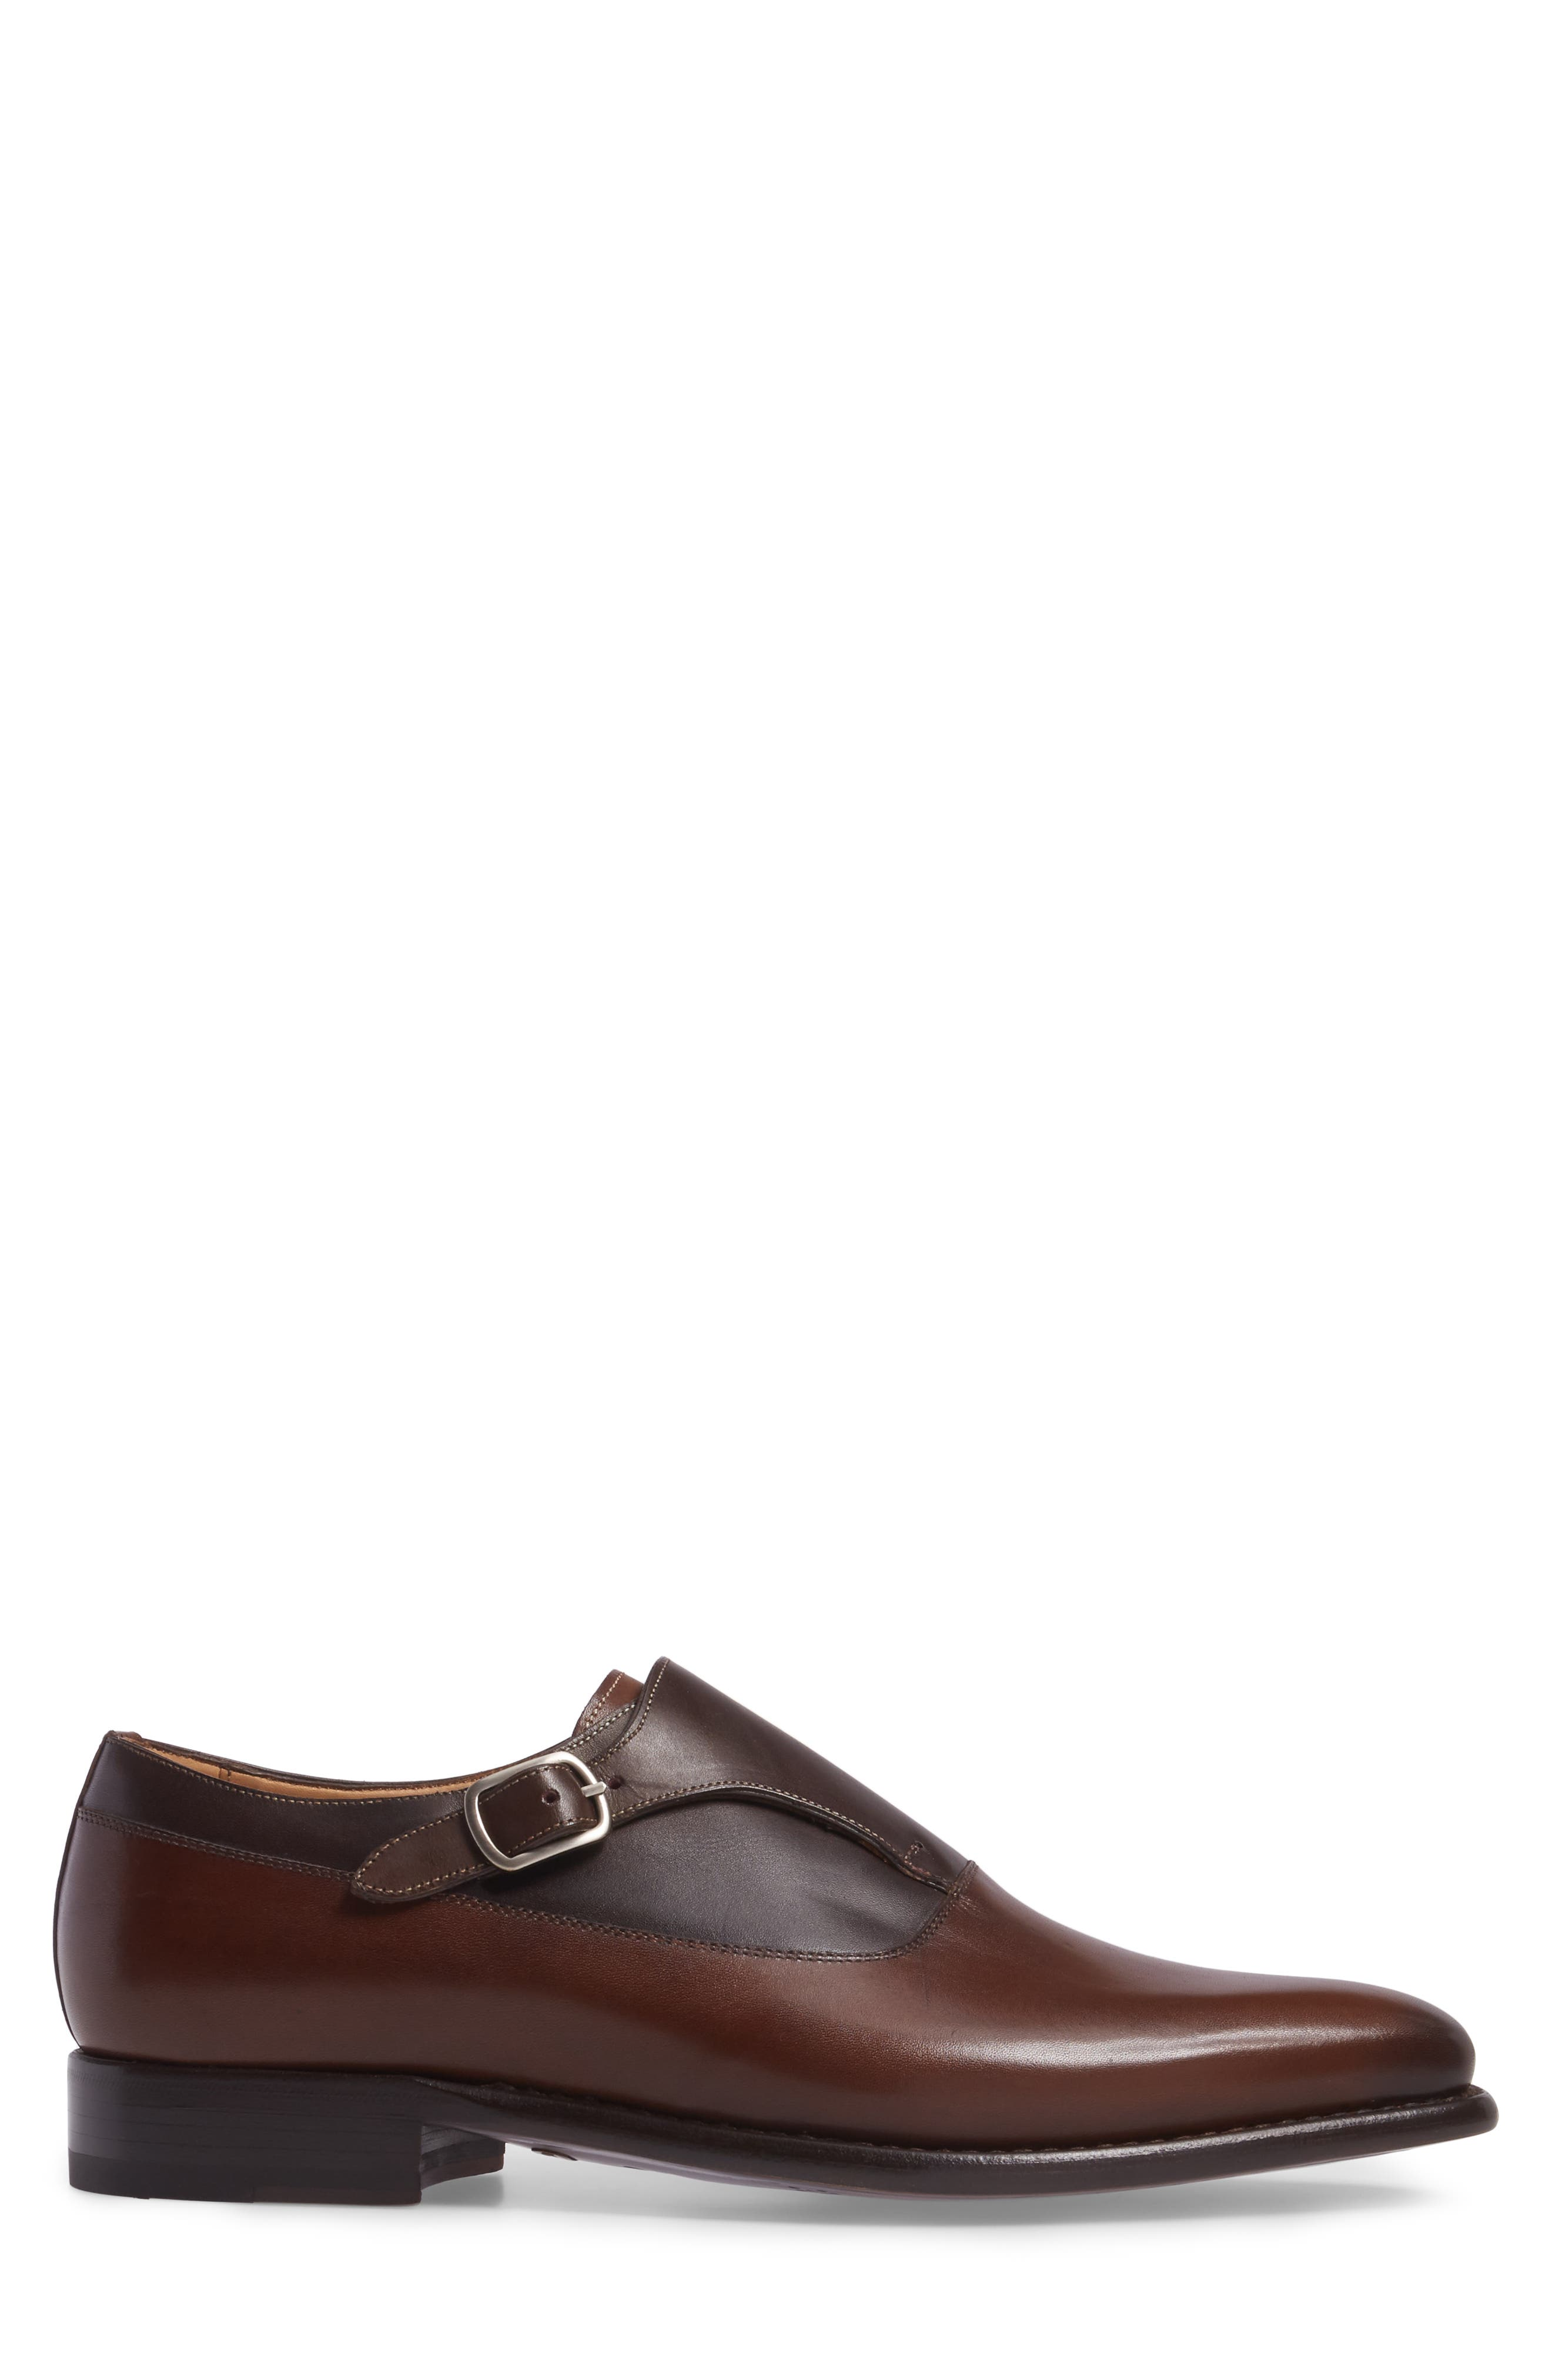 Alternate Image 3  - Mezlan Algar Monk Strap Shoe (Men)